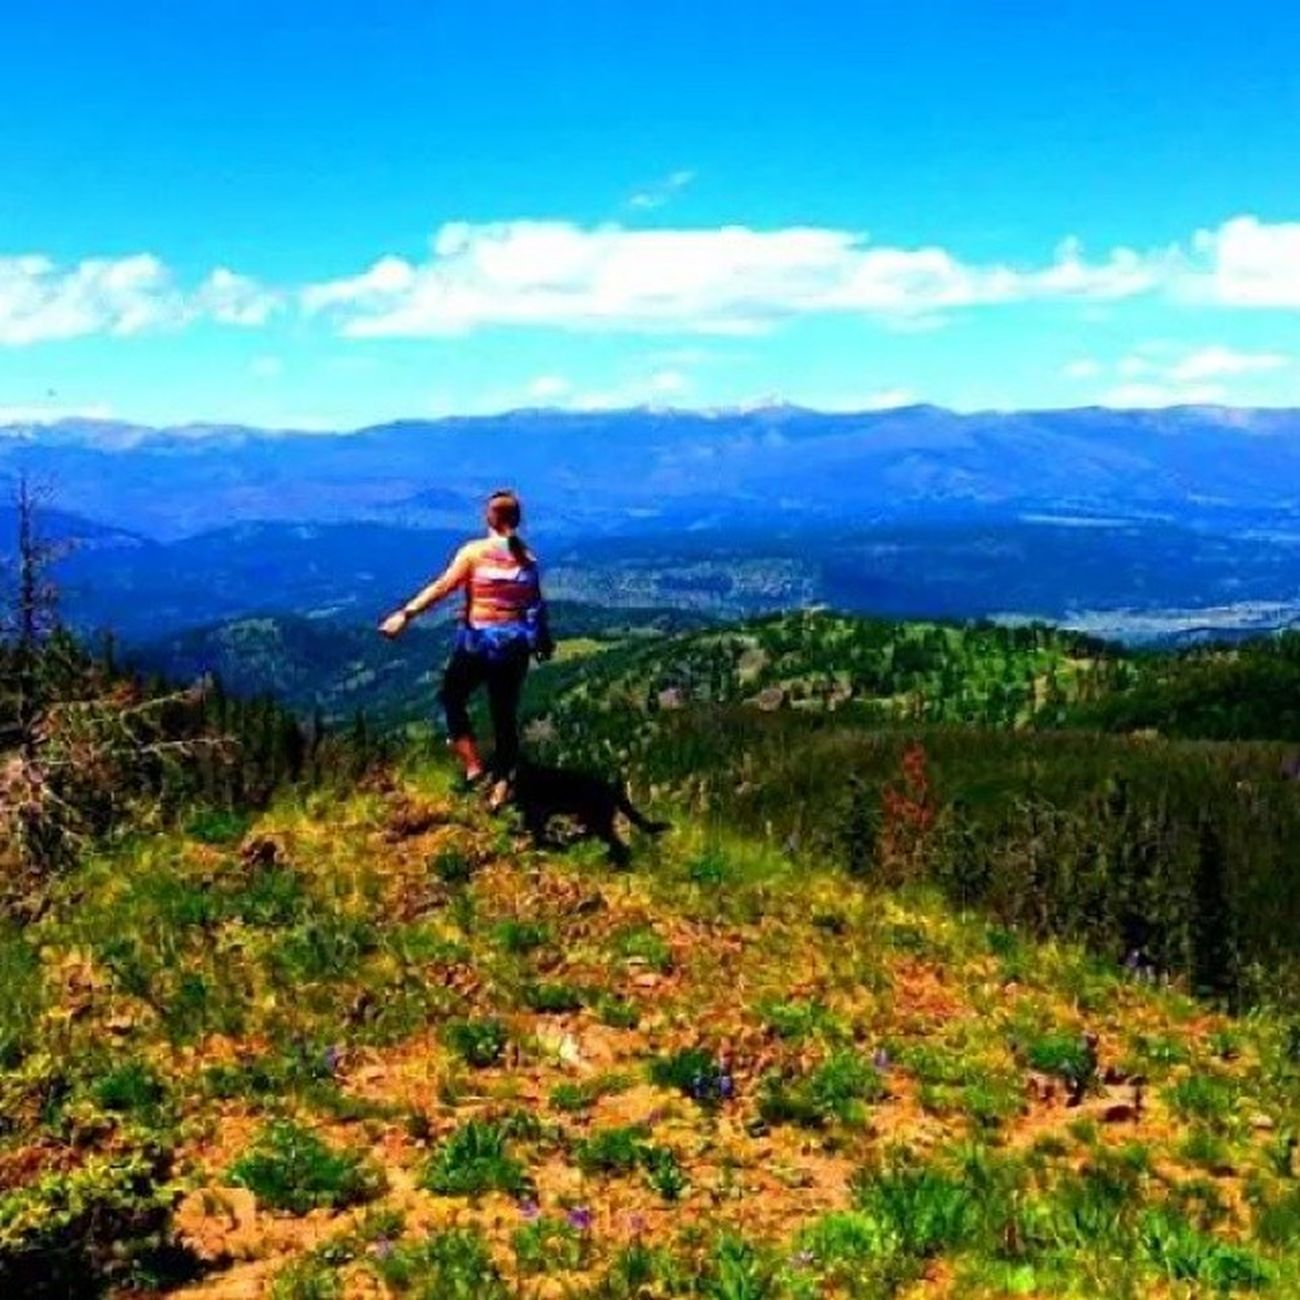 The most spectacular view Bestdayever Hiking BigSkyCountry Lookatthatview ontopoftheworld girlsdayout